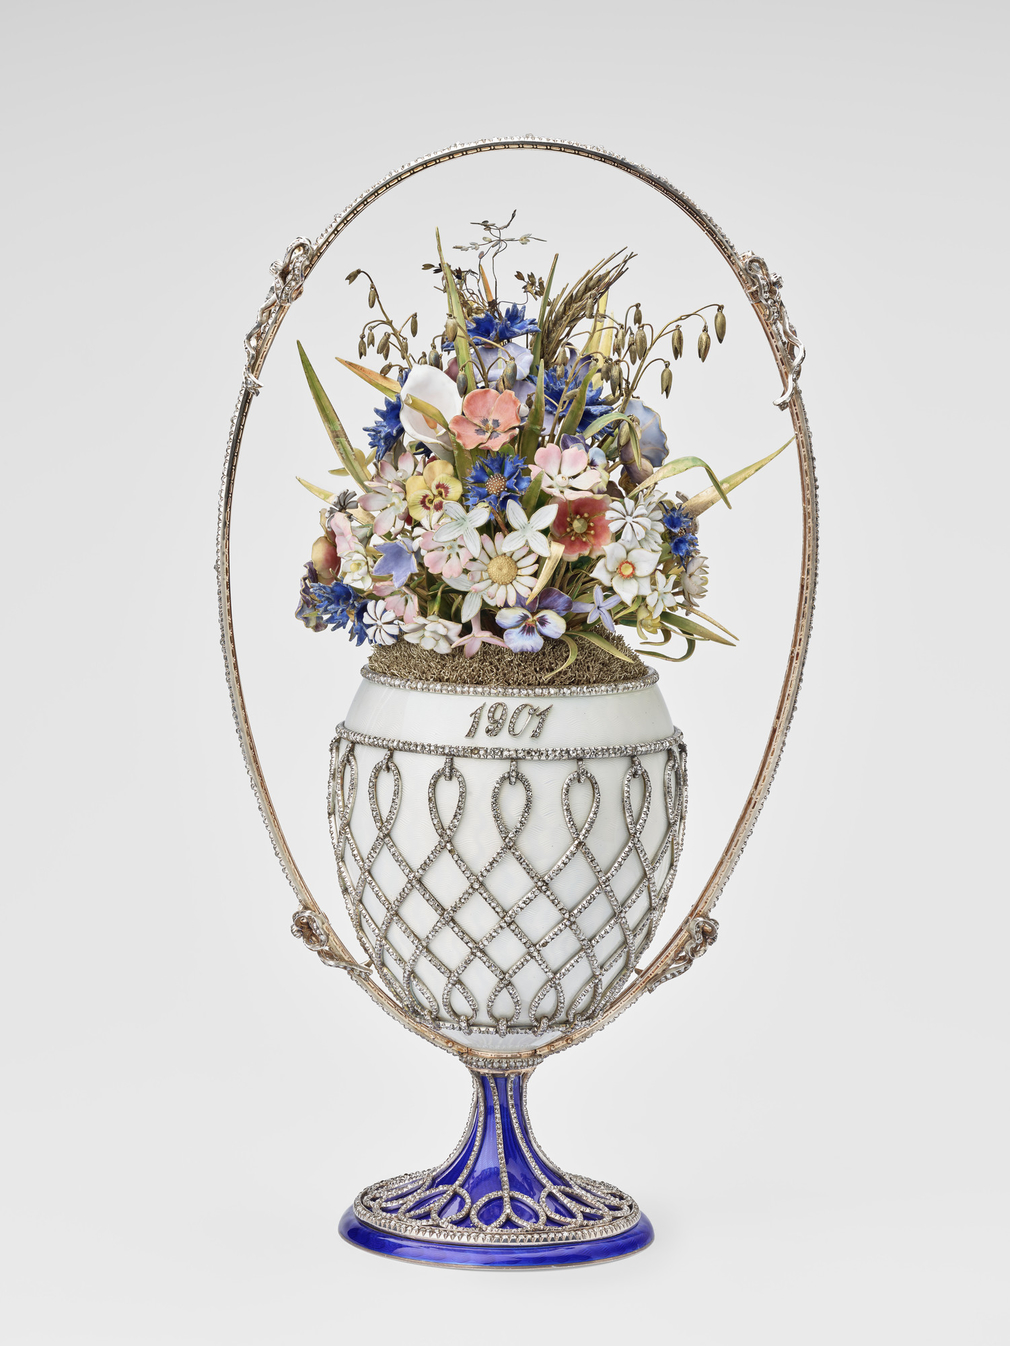 Imperial Easter egg, basket-shaped, silver-gilt and oyster guilloché enamel mounted with rose diamond trellis and oval handle with four bows, blue enamel splayed base with rose diamond trellis. Egg contains wild flowers, leaves and husks of enamel